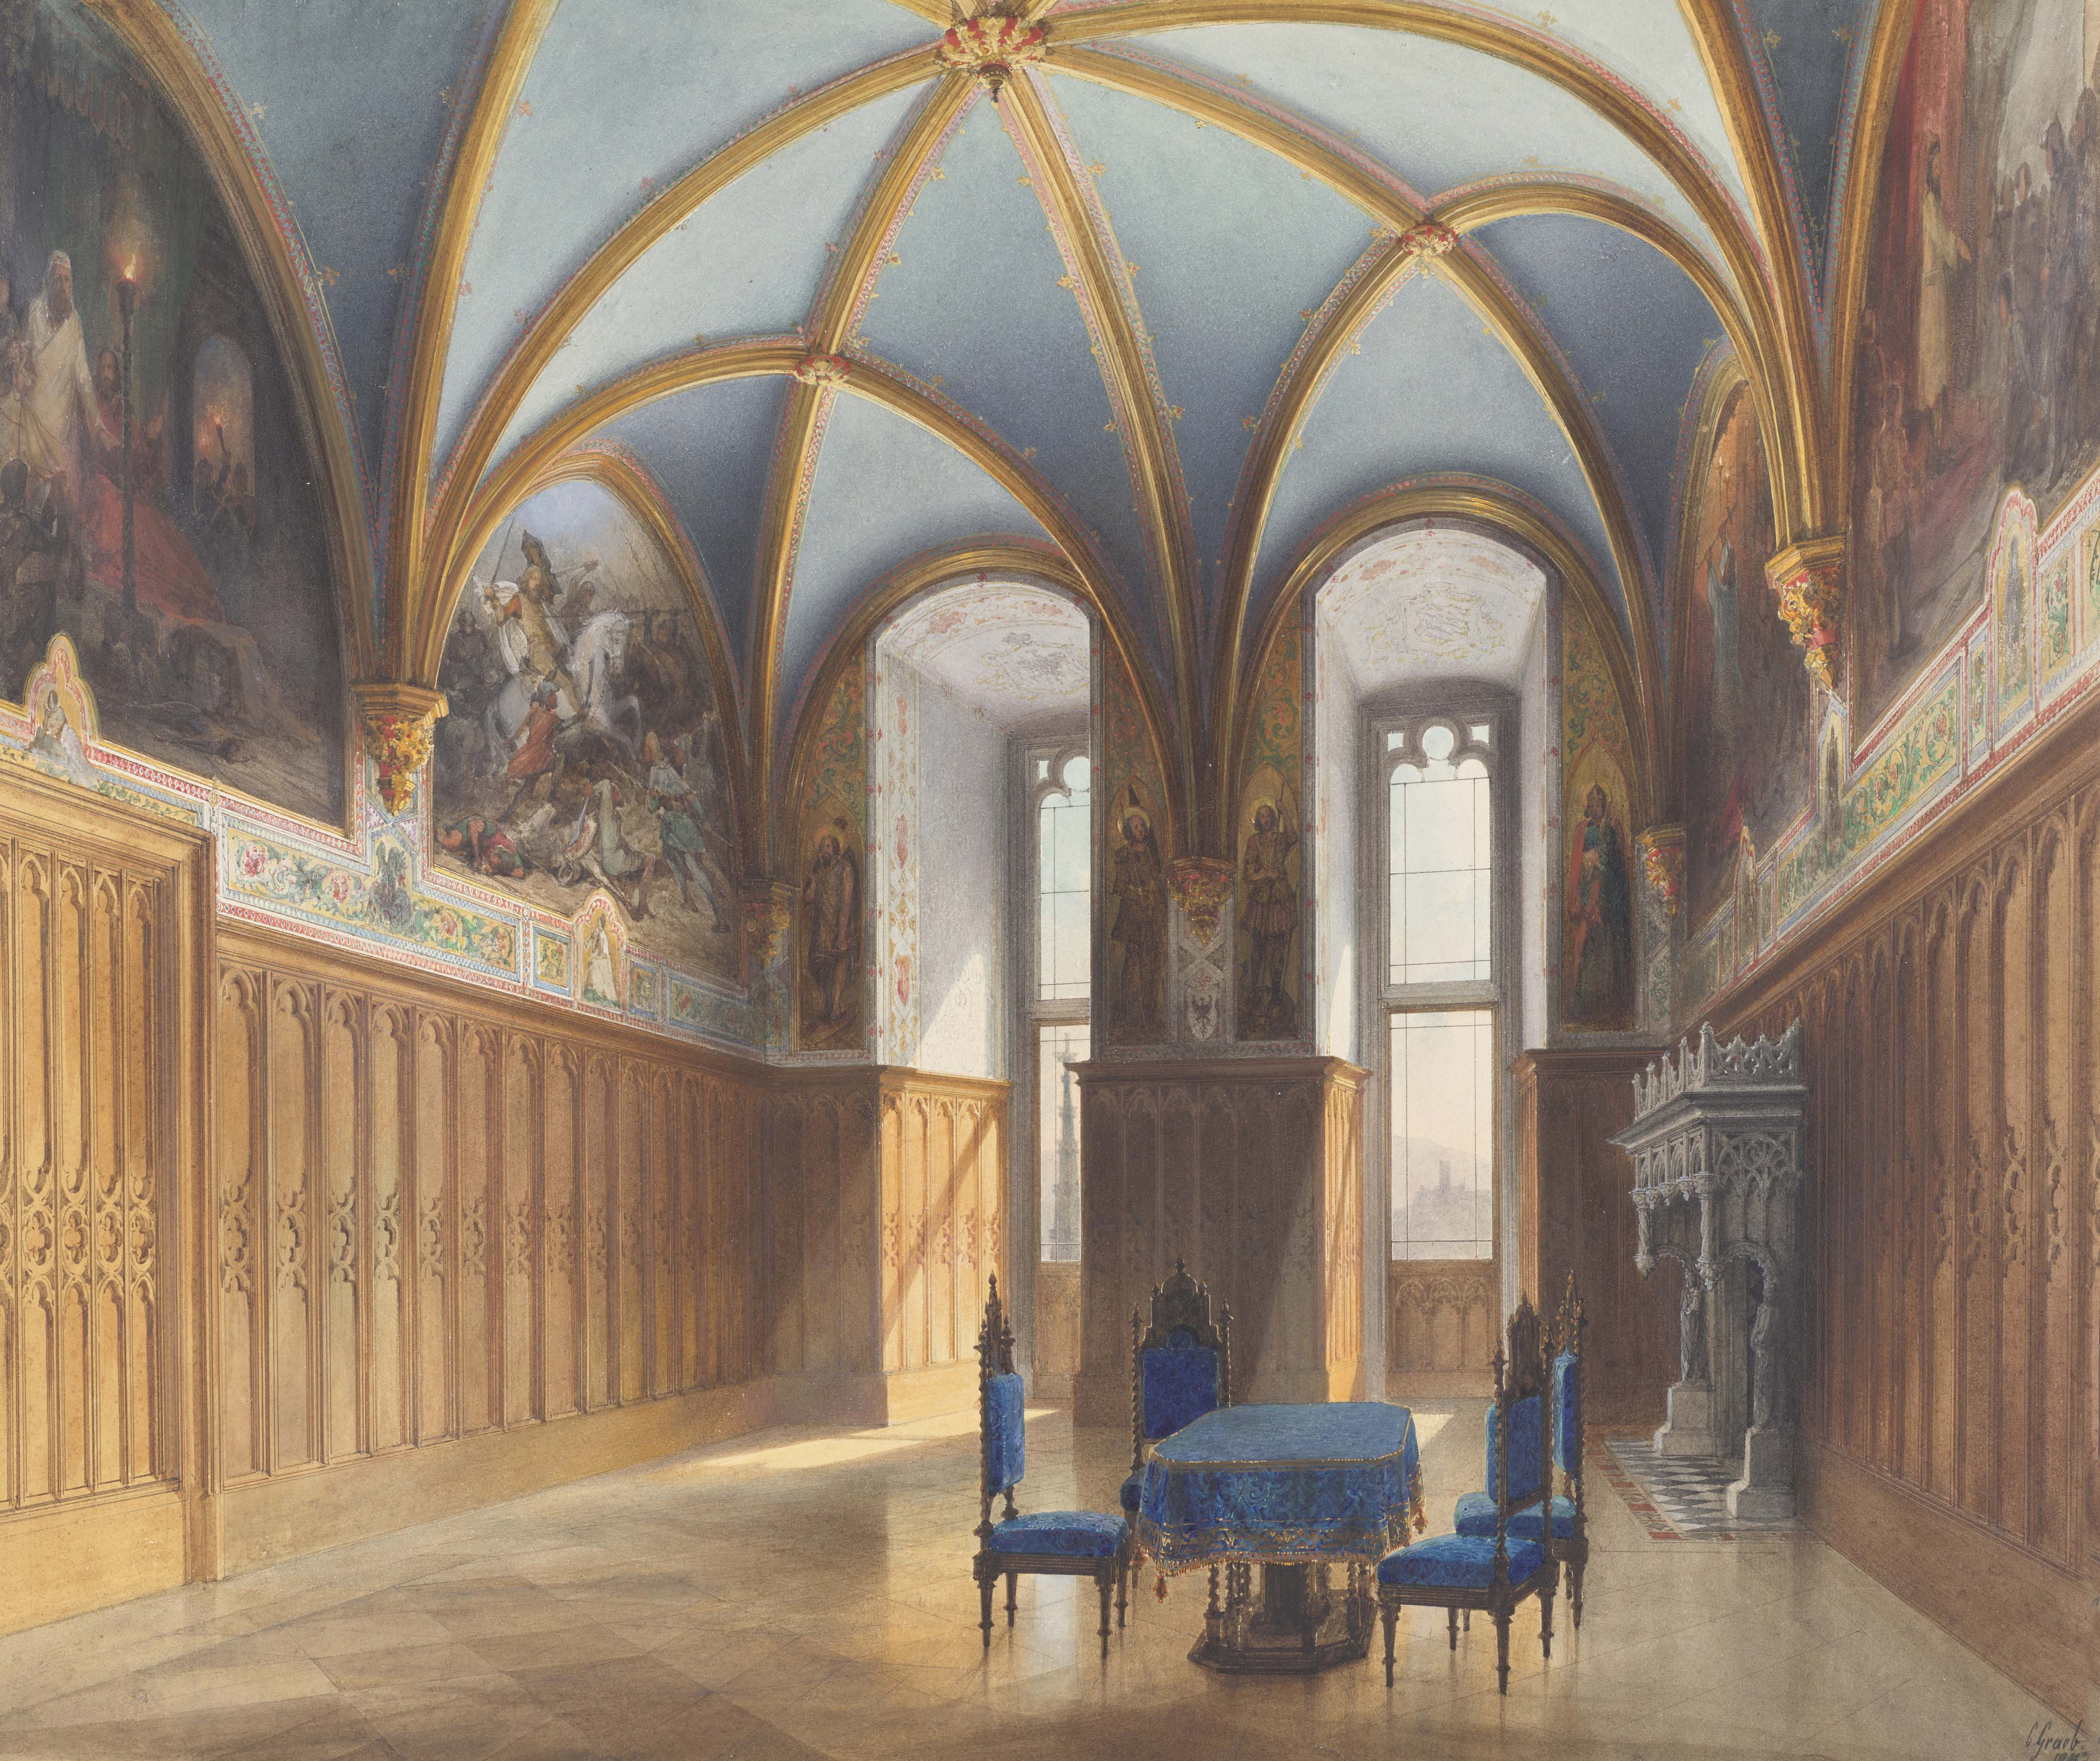 painting of an ornate interior with a vaulted roof